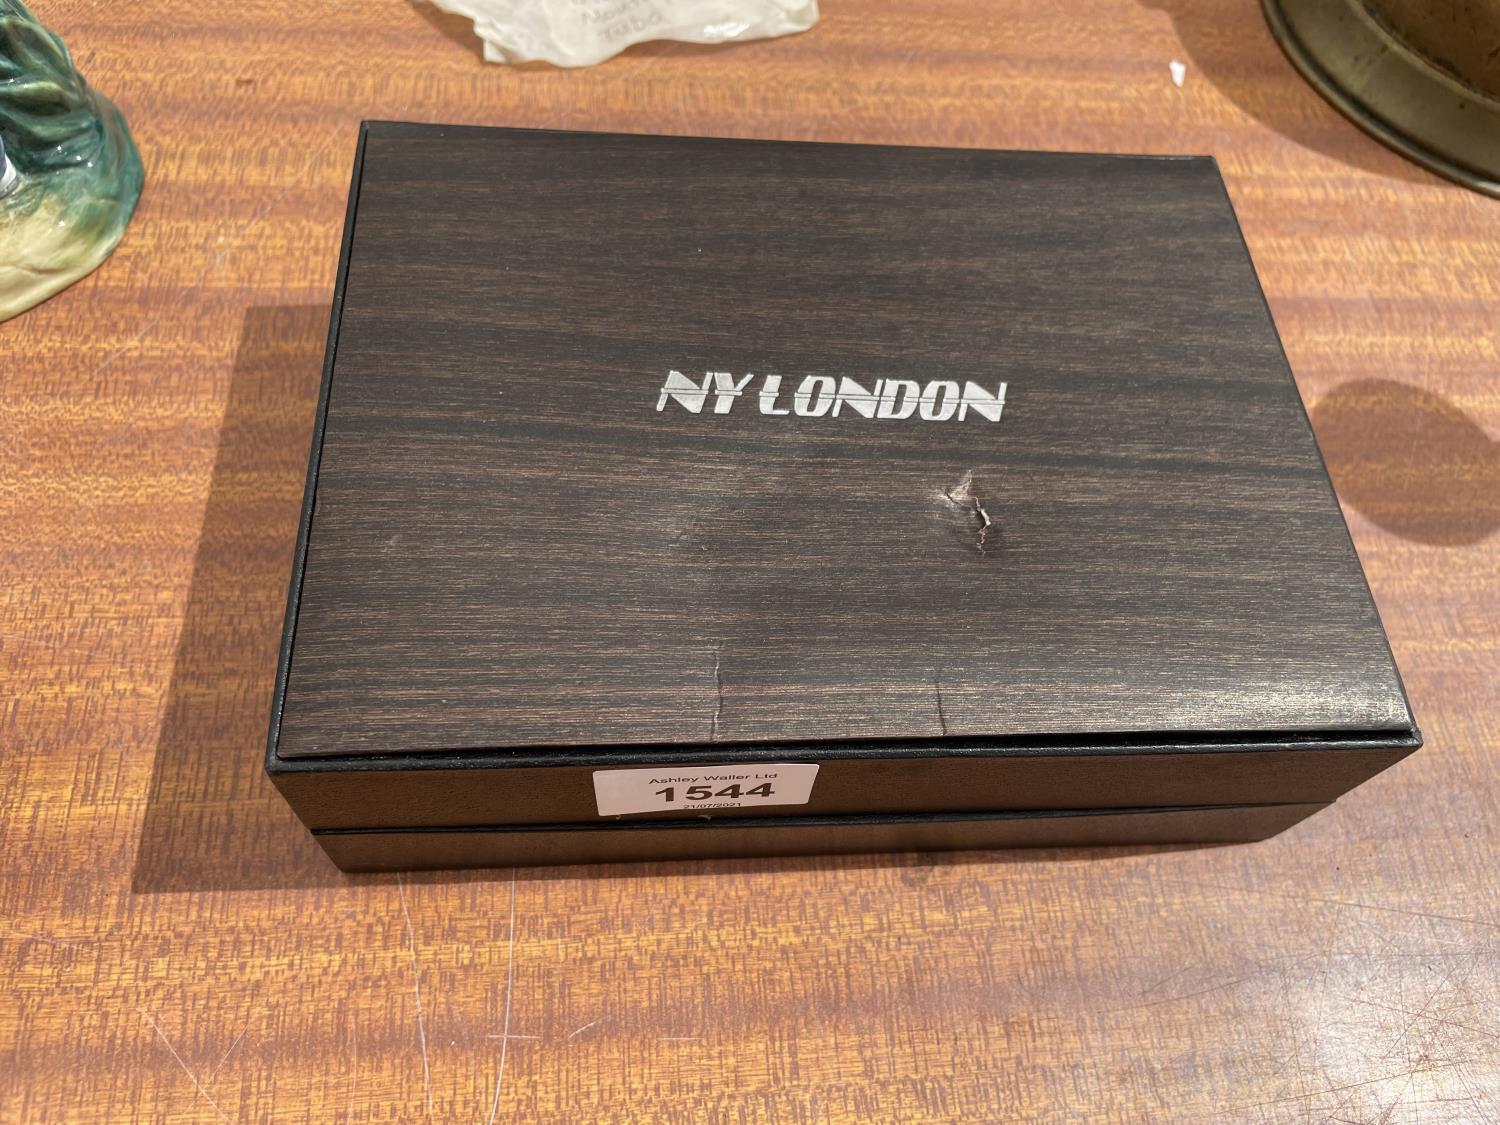 A BOXED NY LONDON WATCH, LIGHTER, PEN AND TORCH SET - Image 5 of 6